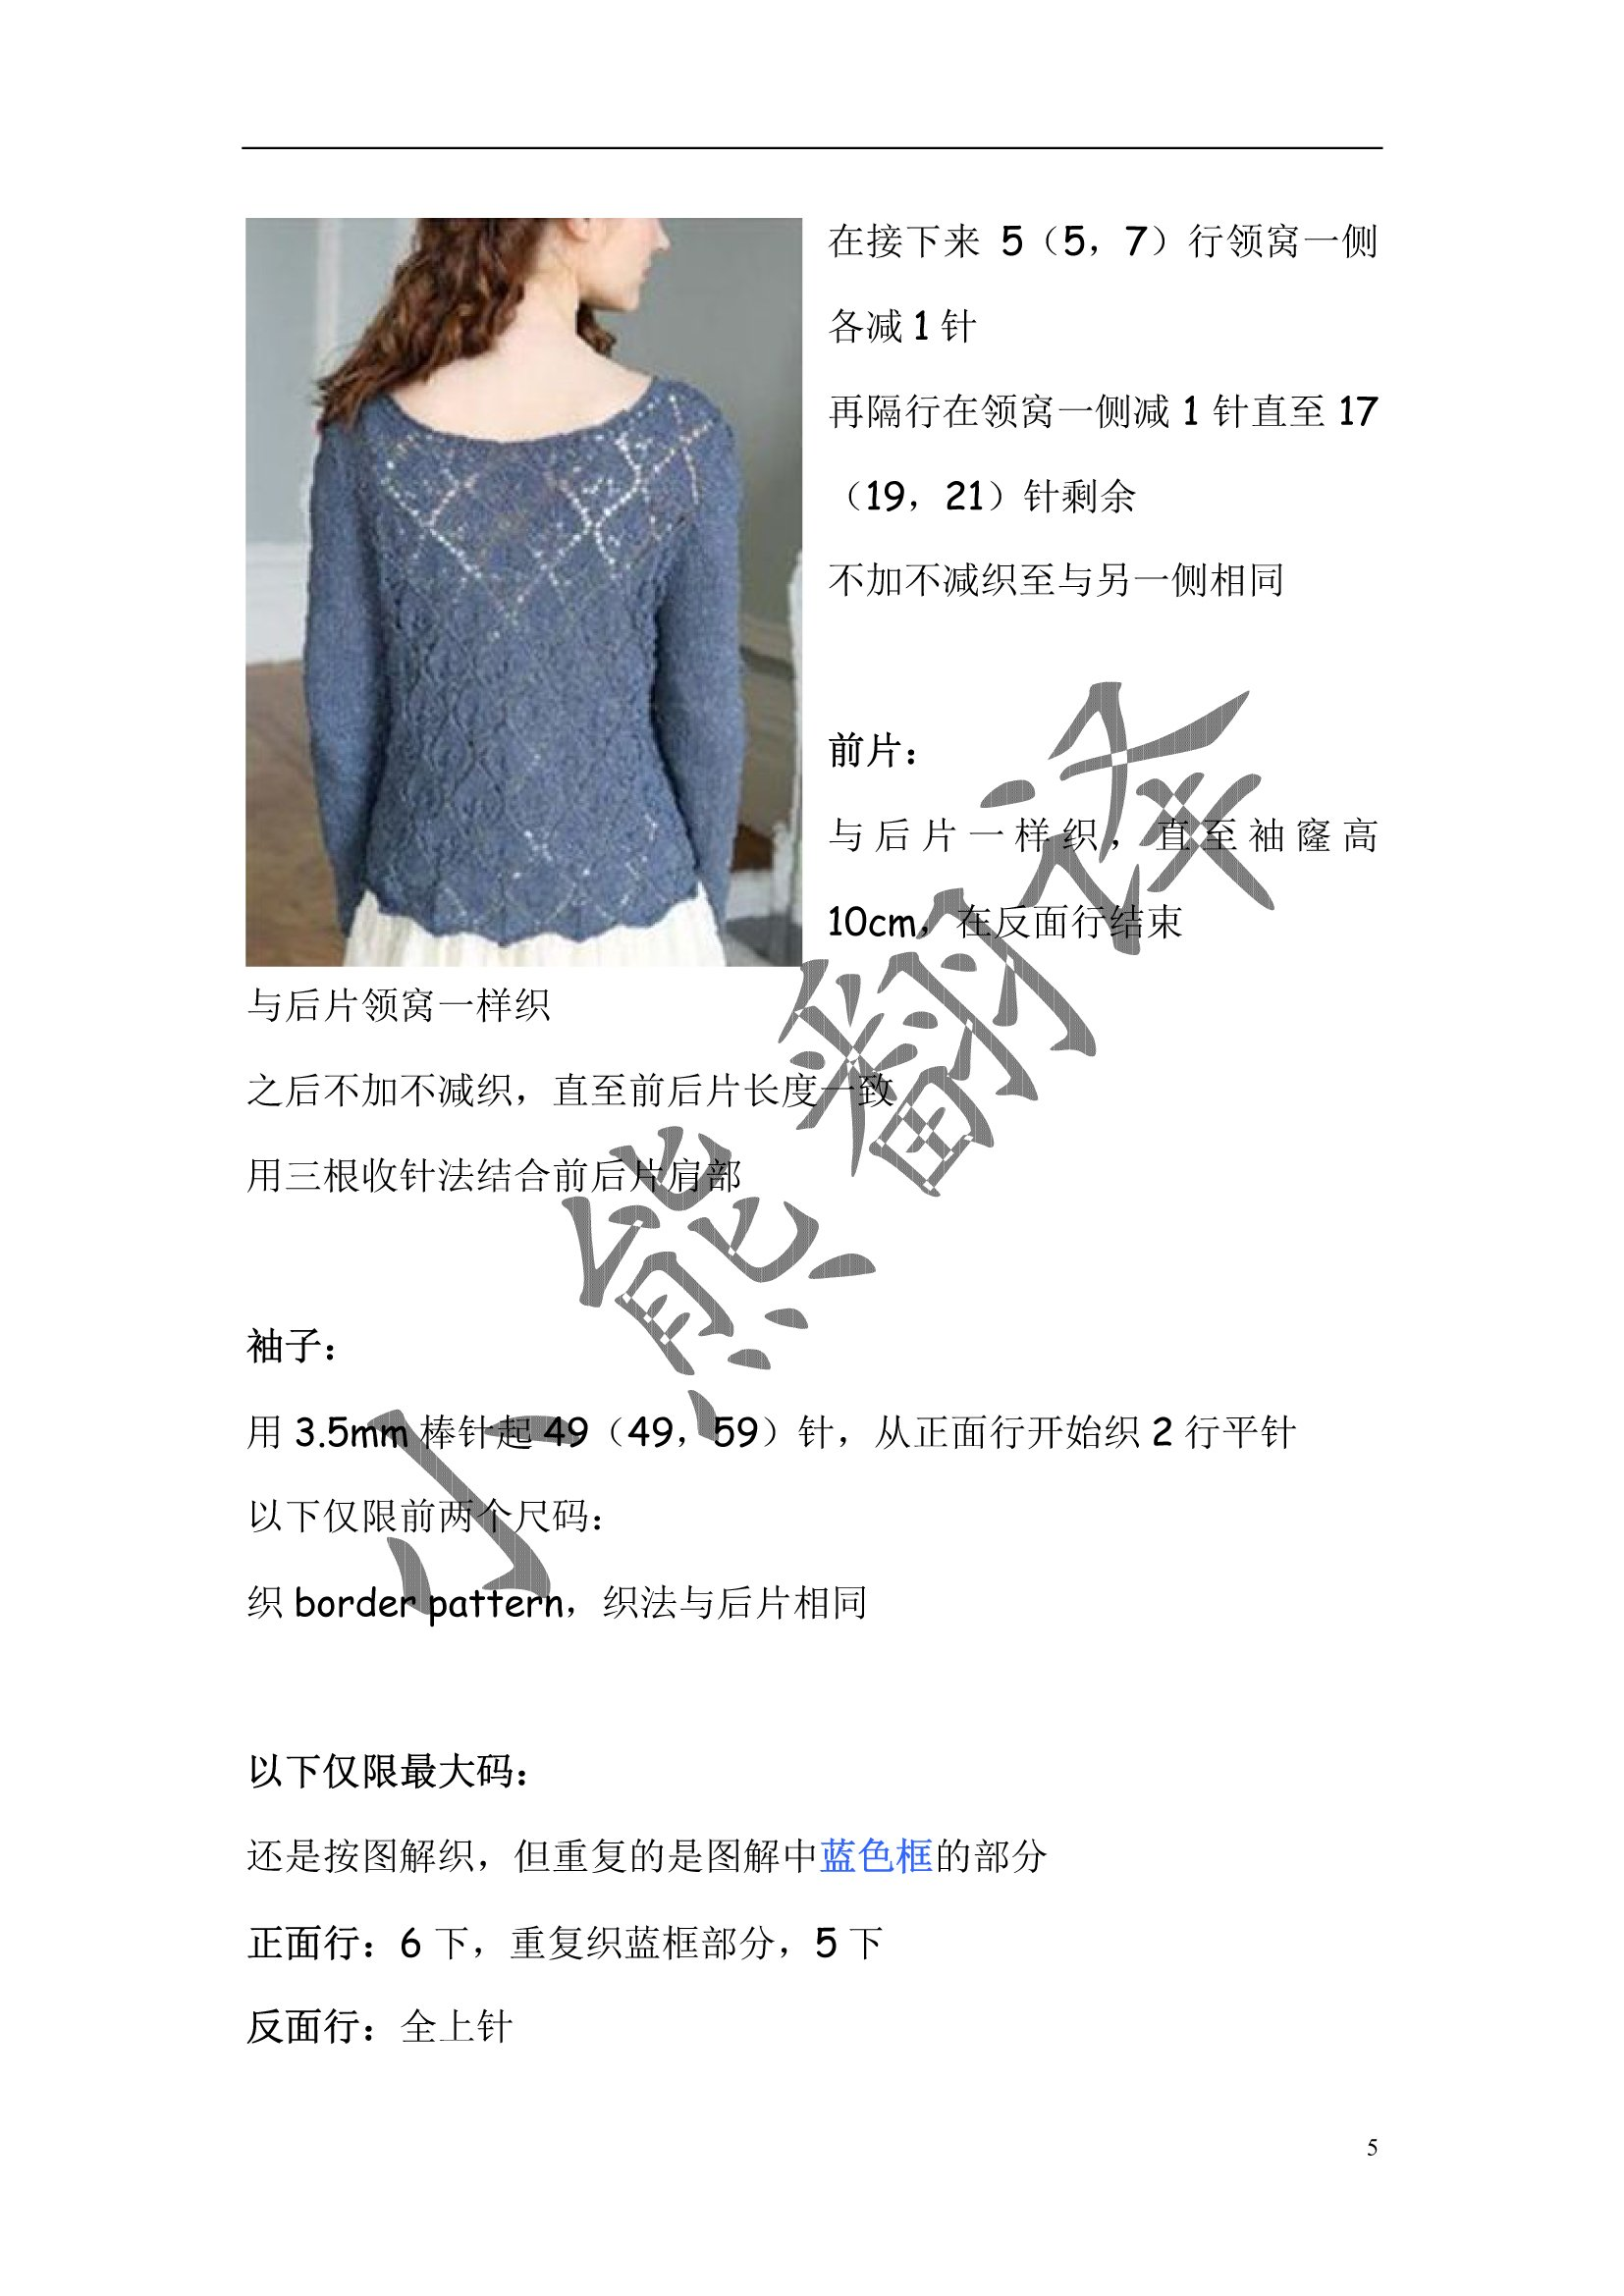 Microsoft Word - Waterlily Lace Jumper5 拷贝.jpg